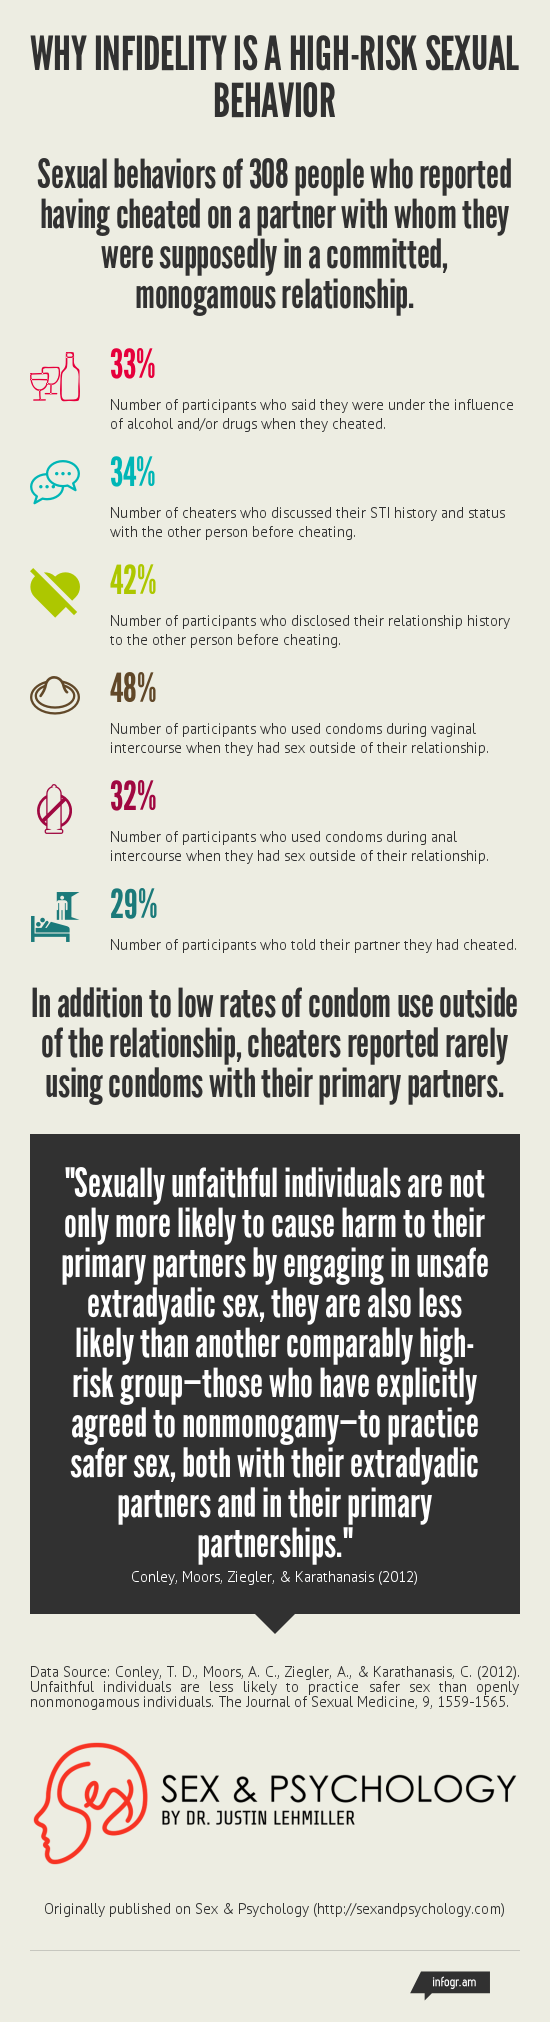 Information on sex and being safe